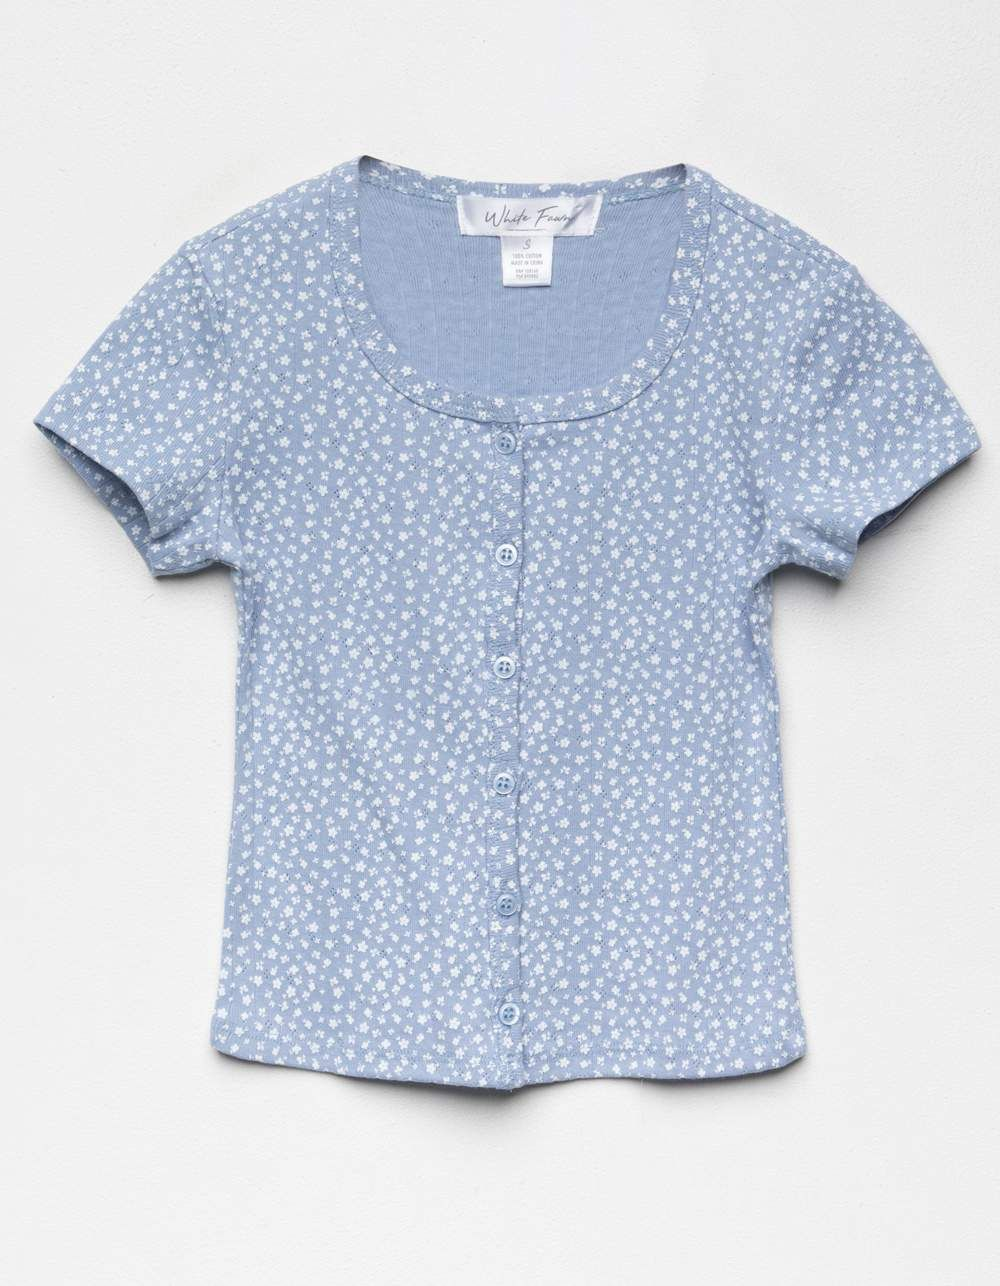 WHITE FAWN Ditsy Button Front Girls Top